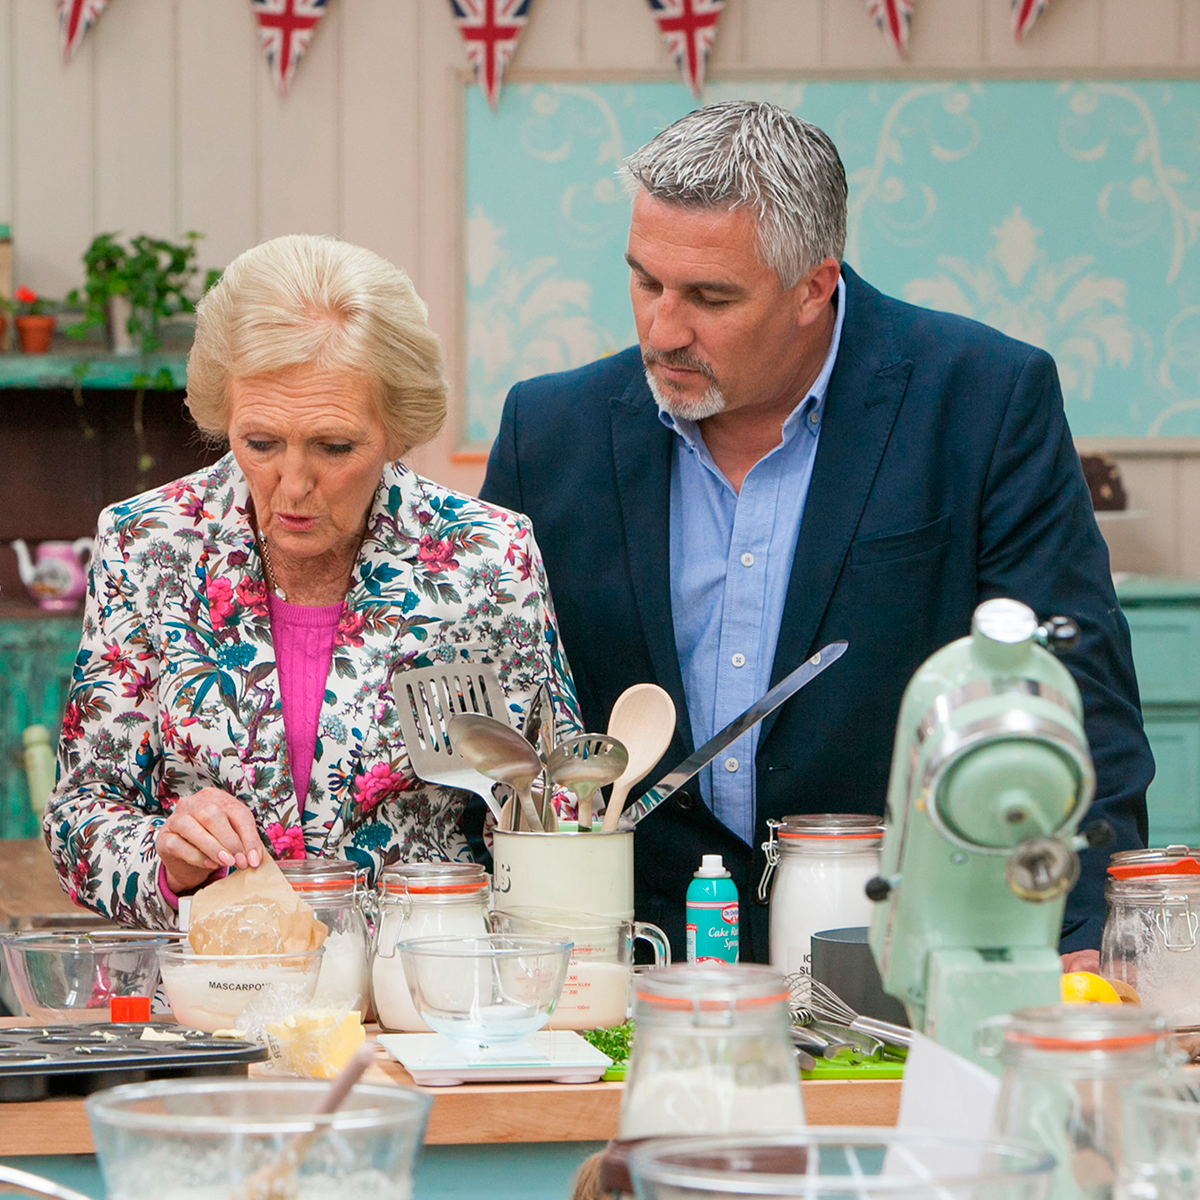 the-great-british-bake-off-paul-hollywood-mary-berry-best-baking-apps-celebrity-chef-tips-goodhousekeeping-co-uk-200814